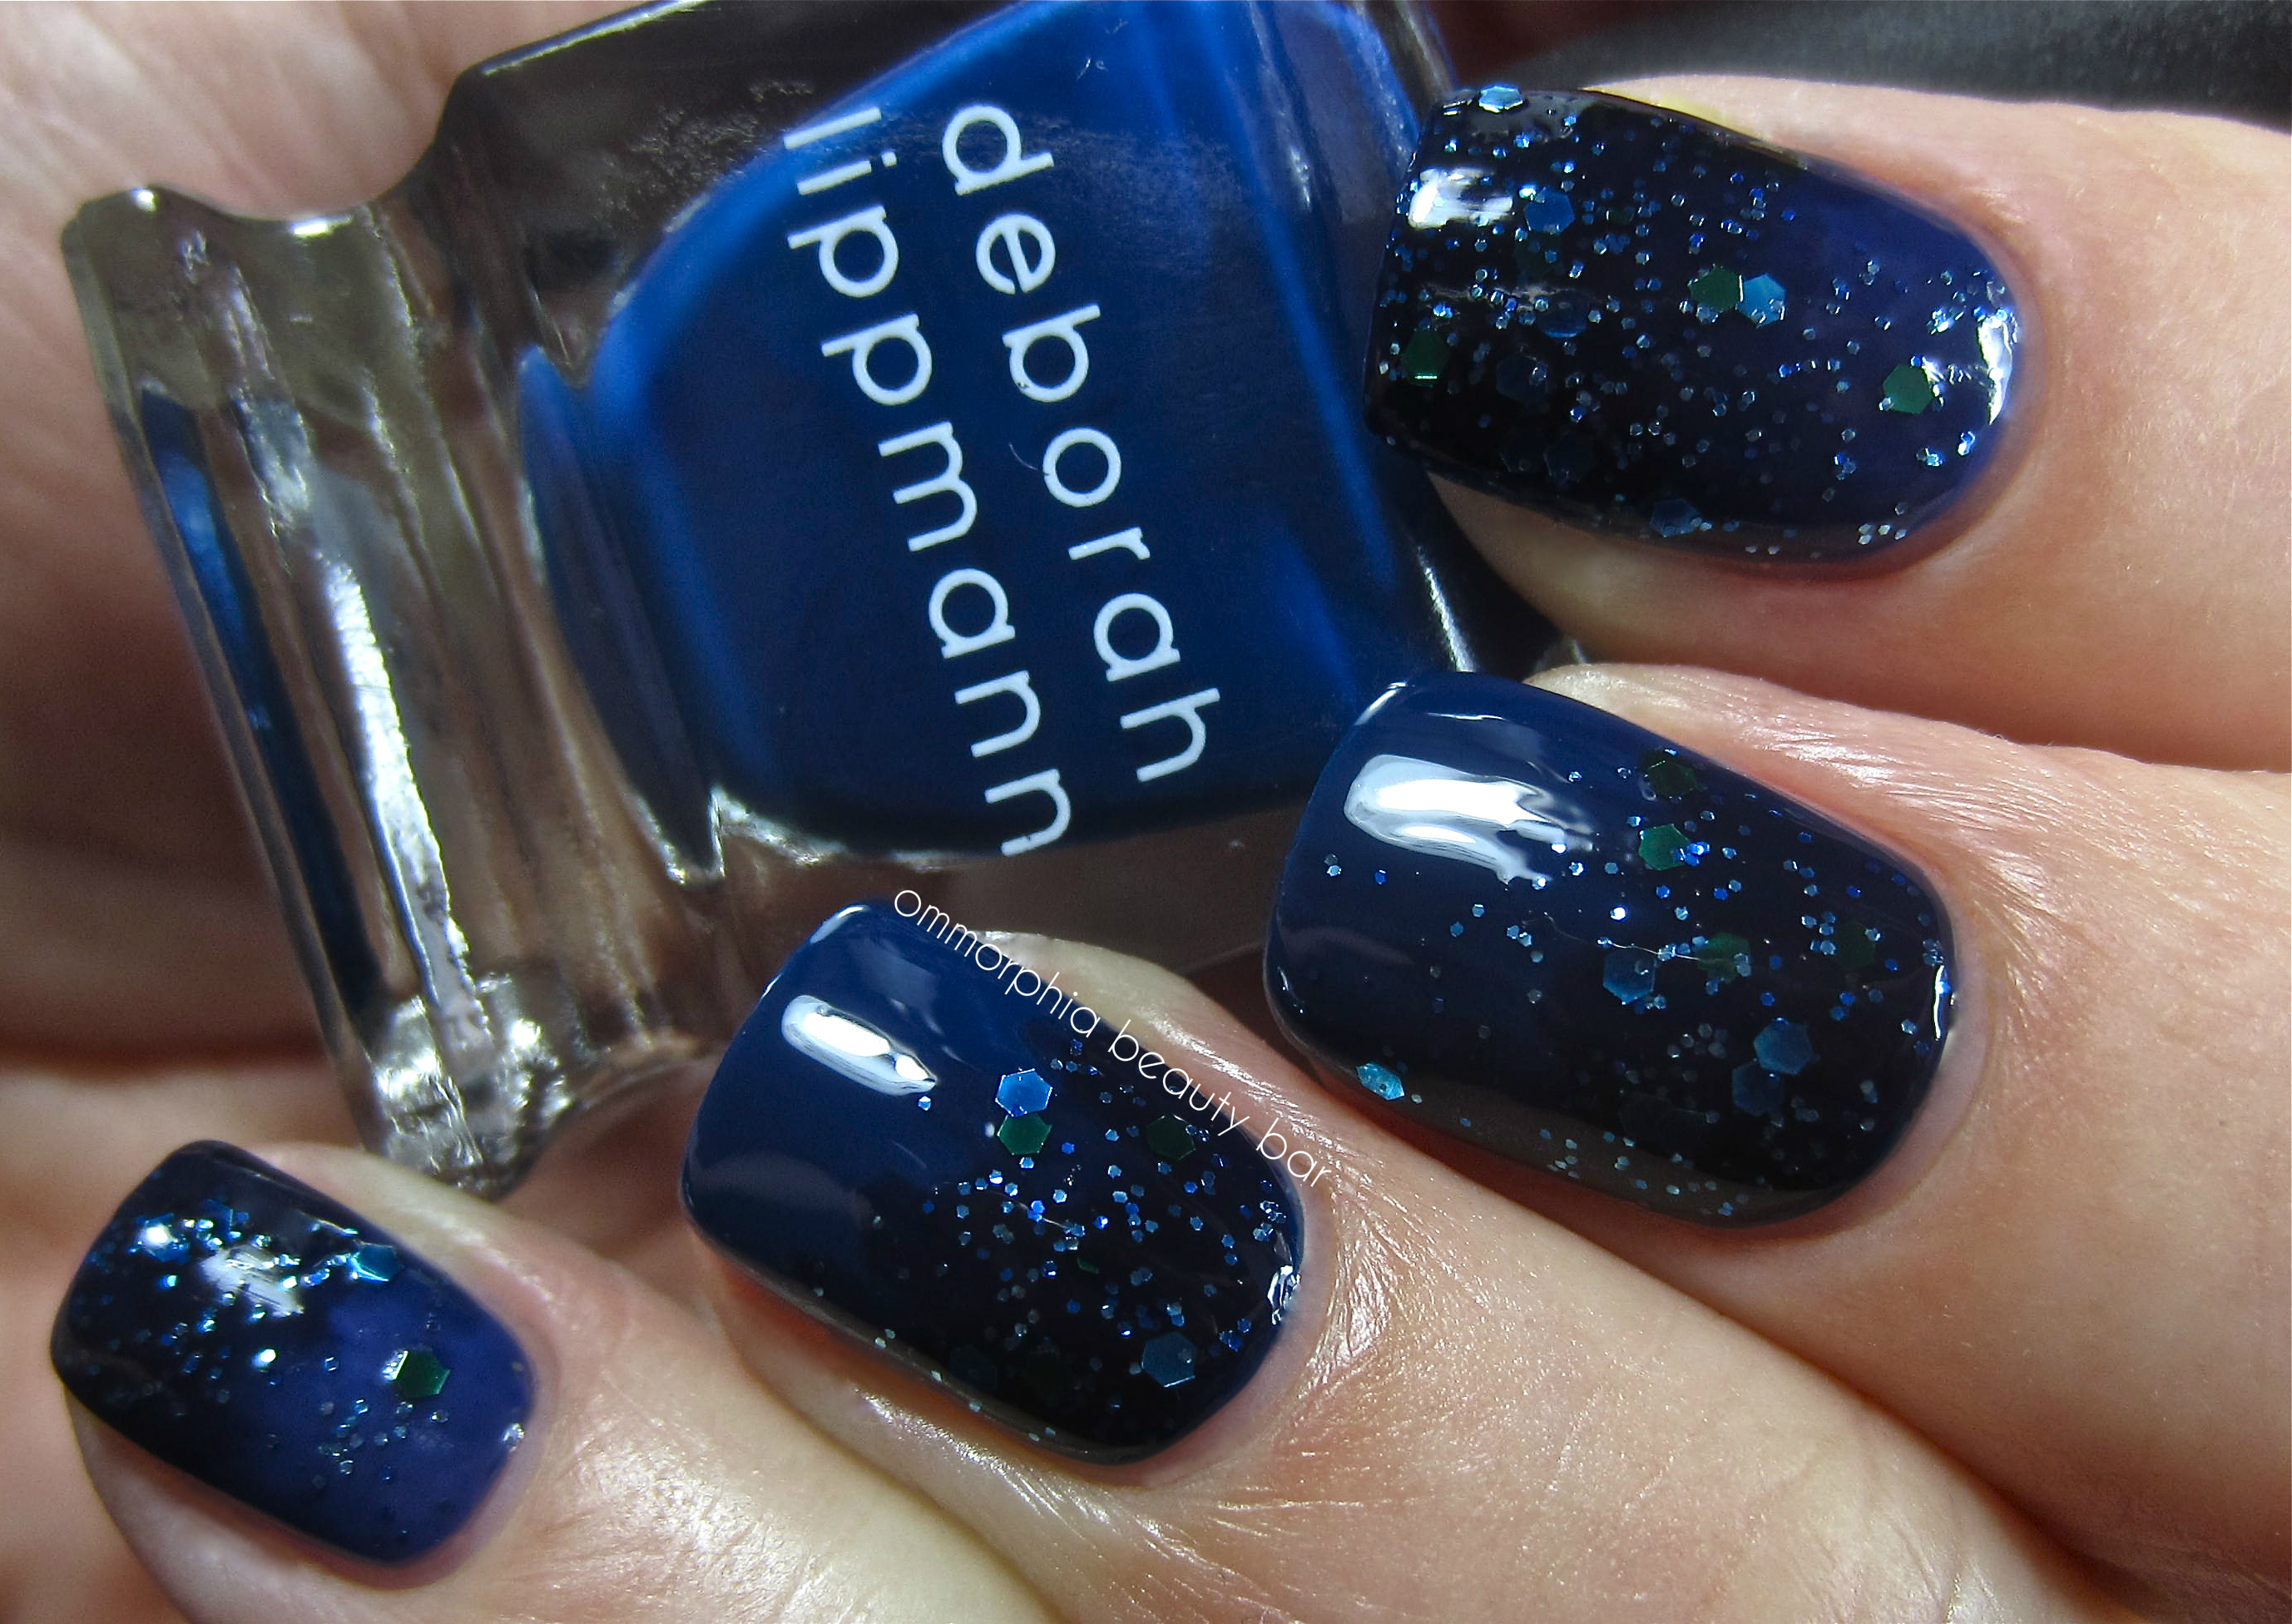 Deborah Lippmann Raspberry Beret swatch | ommorphia beauty bar